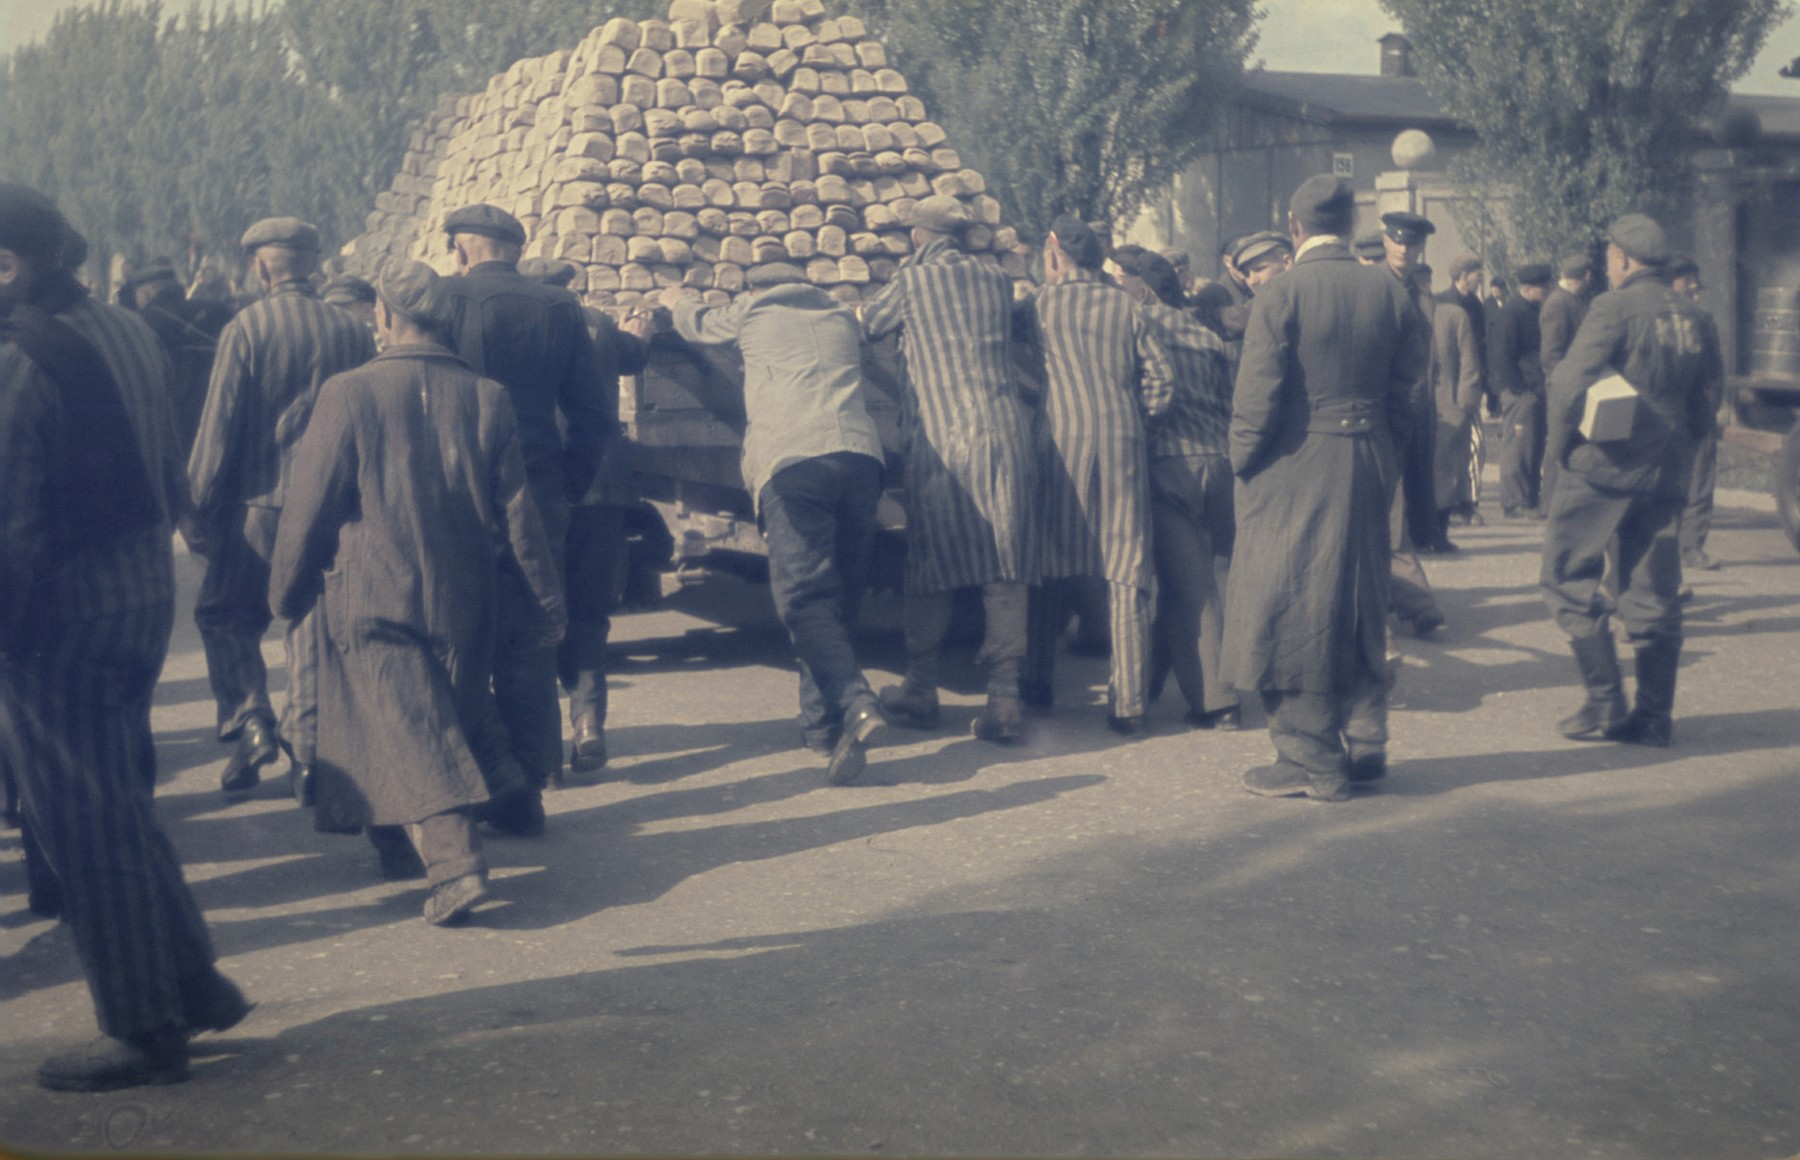 Survivors push a wagon piled high with loaves of bread in the newly liberated Dachau concentration camp.